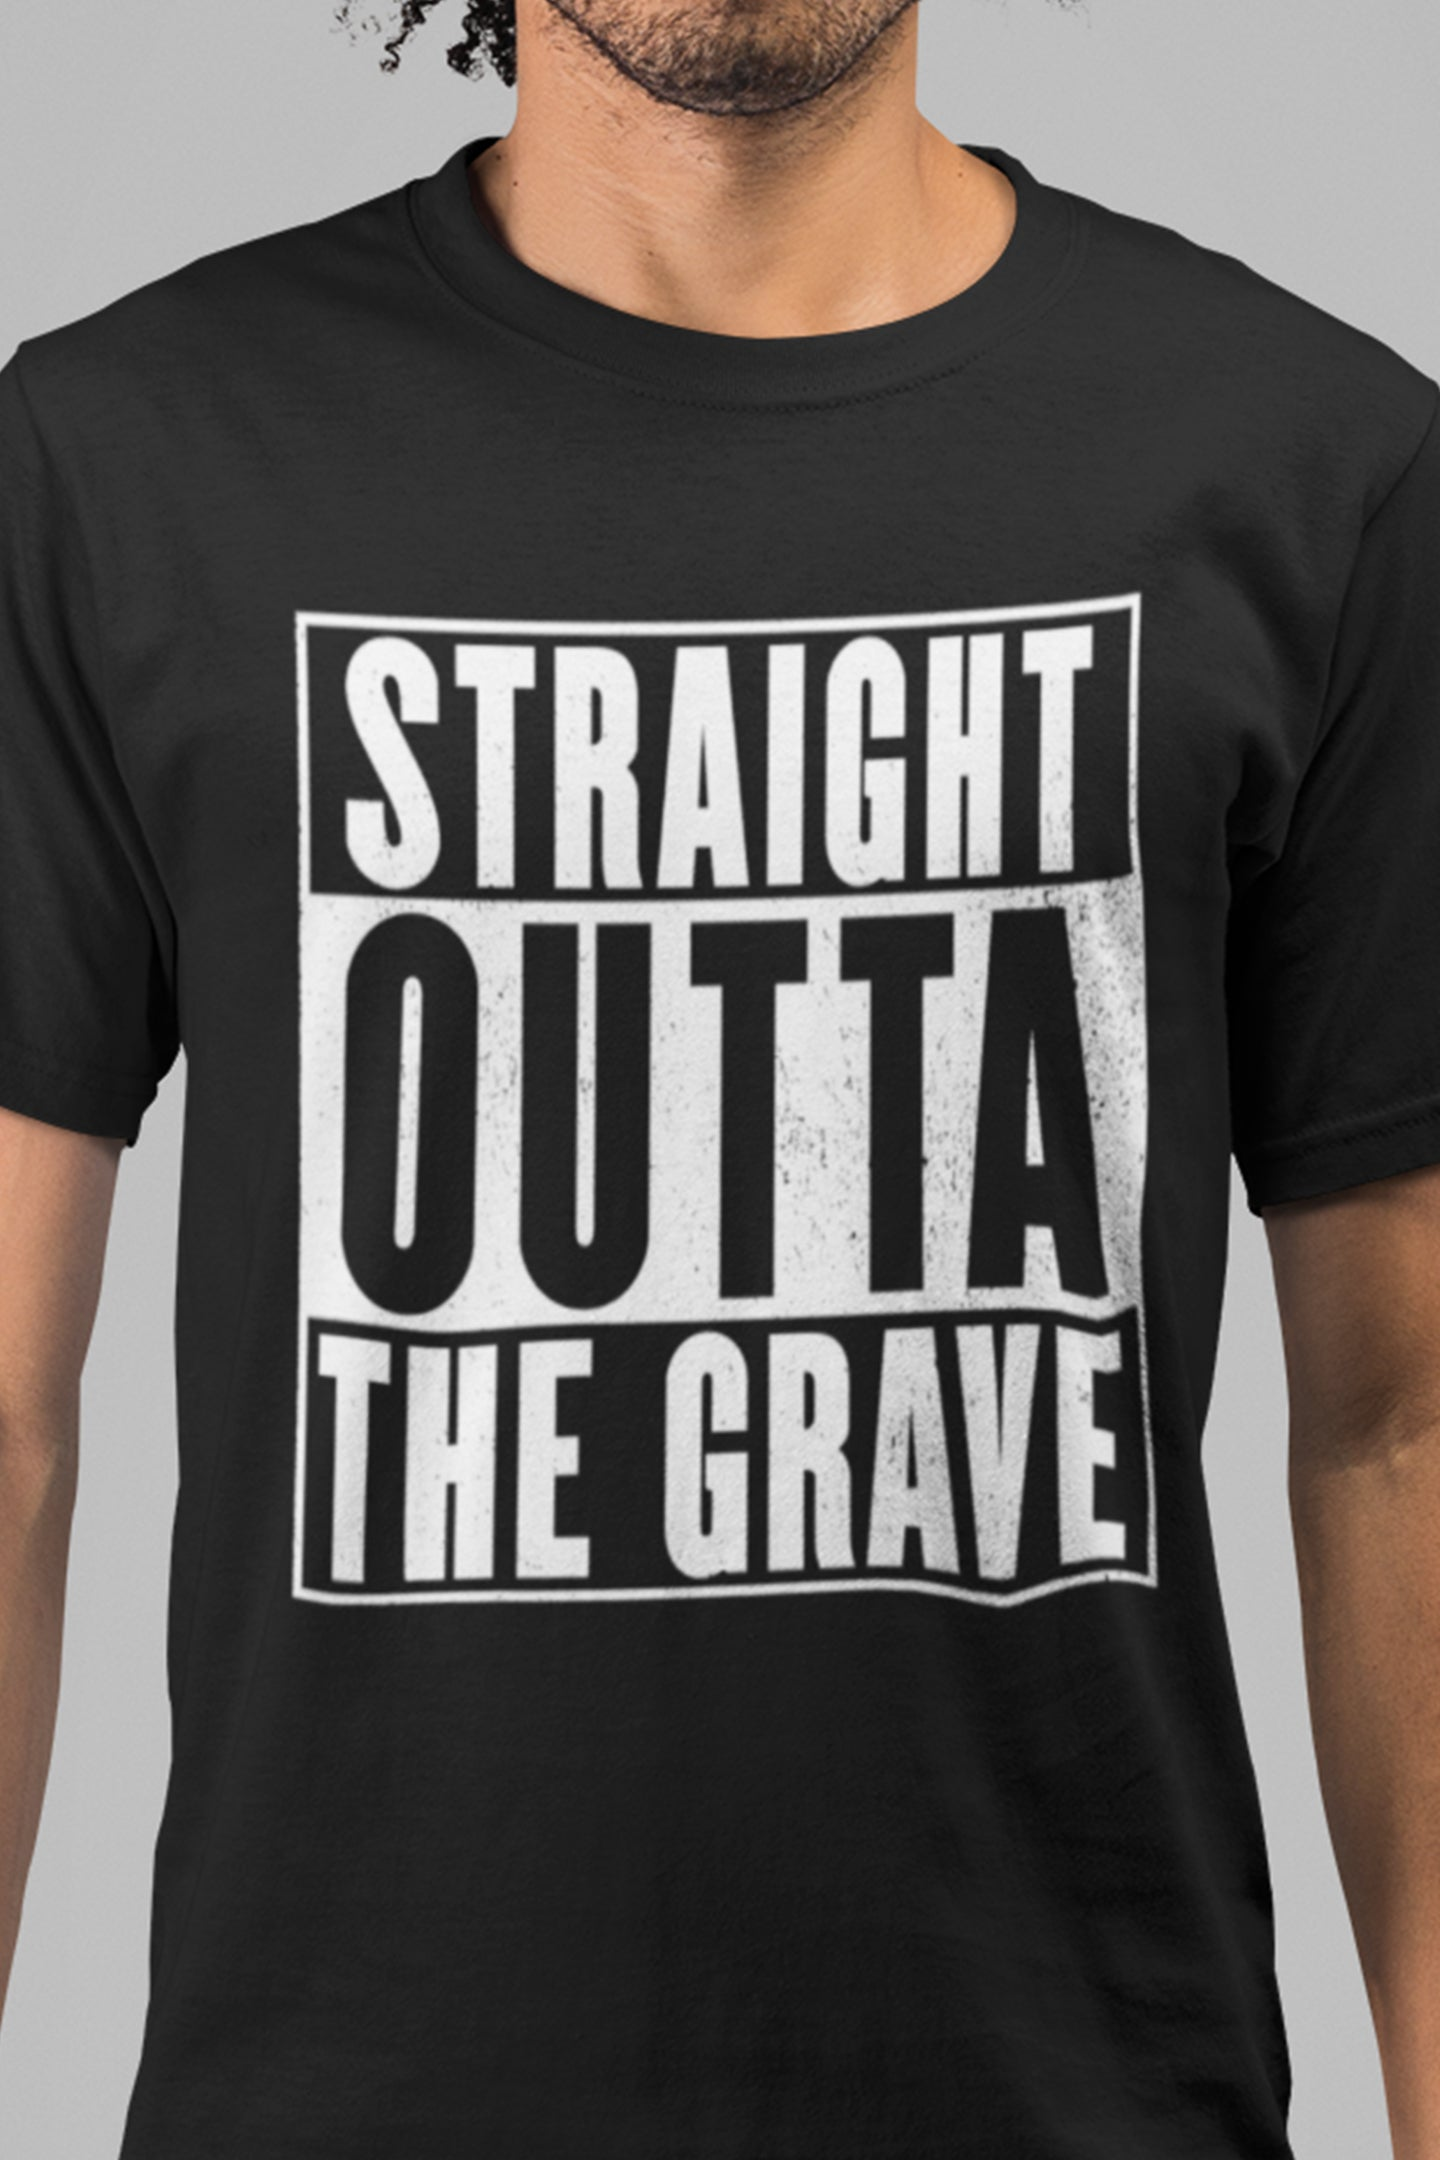 Straight Outta the Grave - Unisex